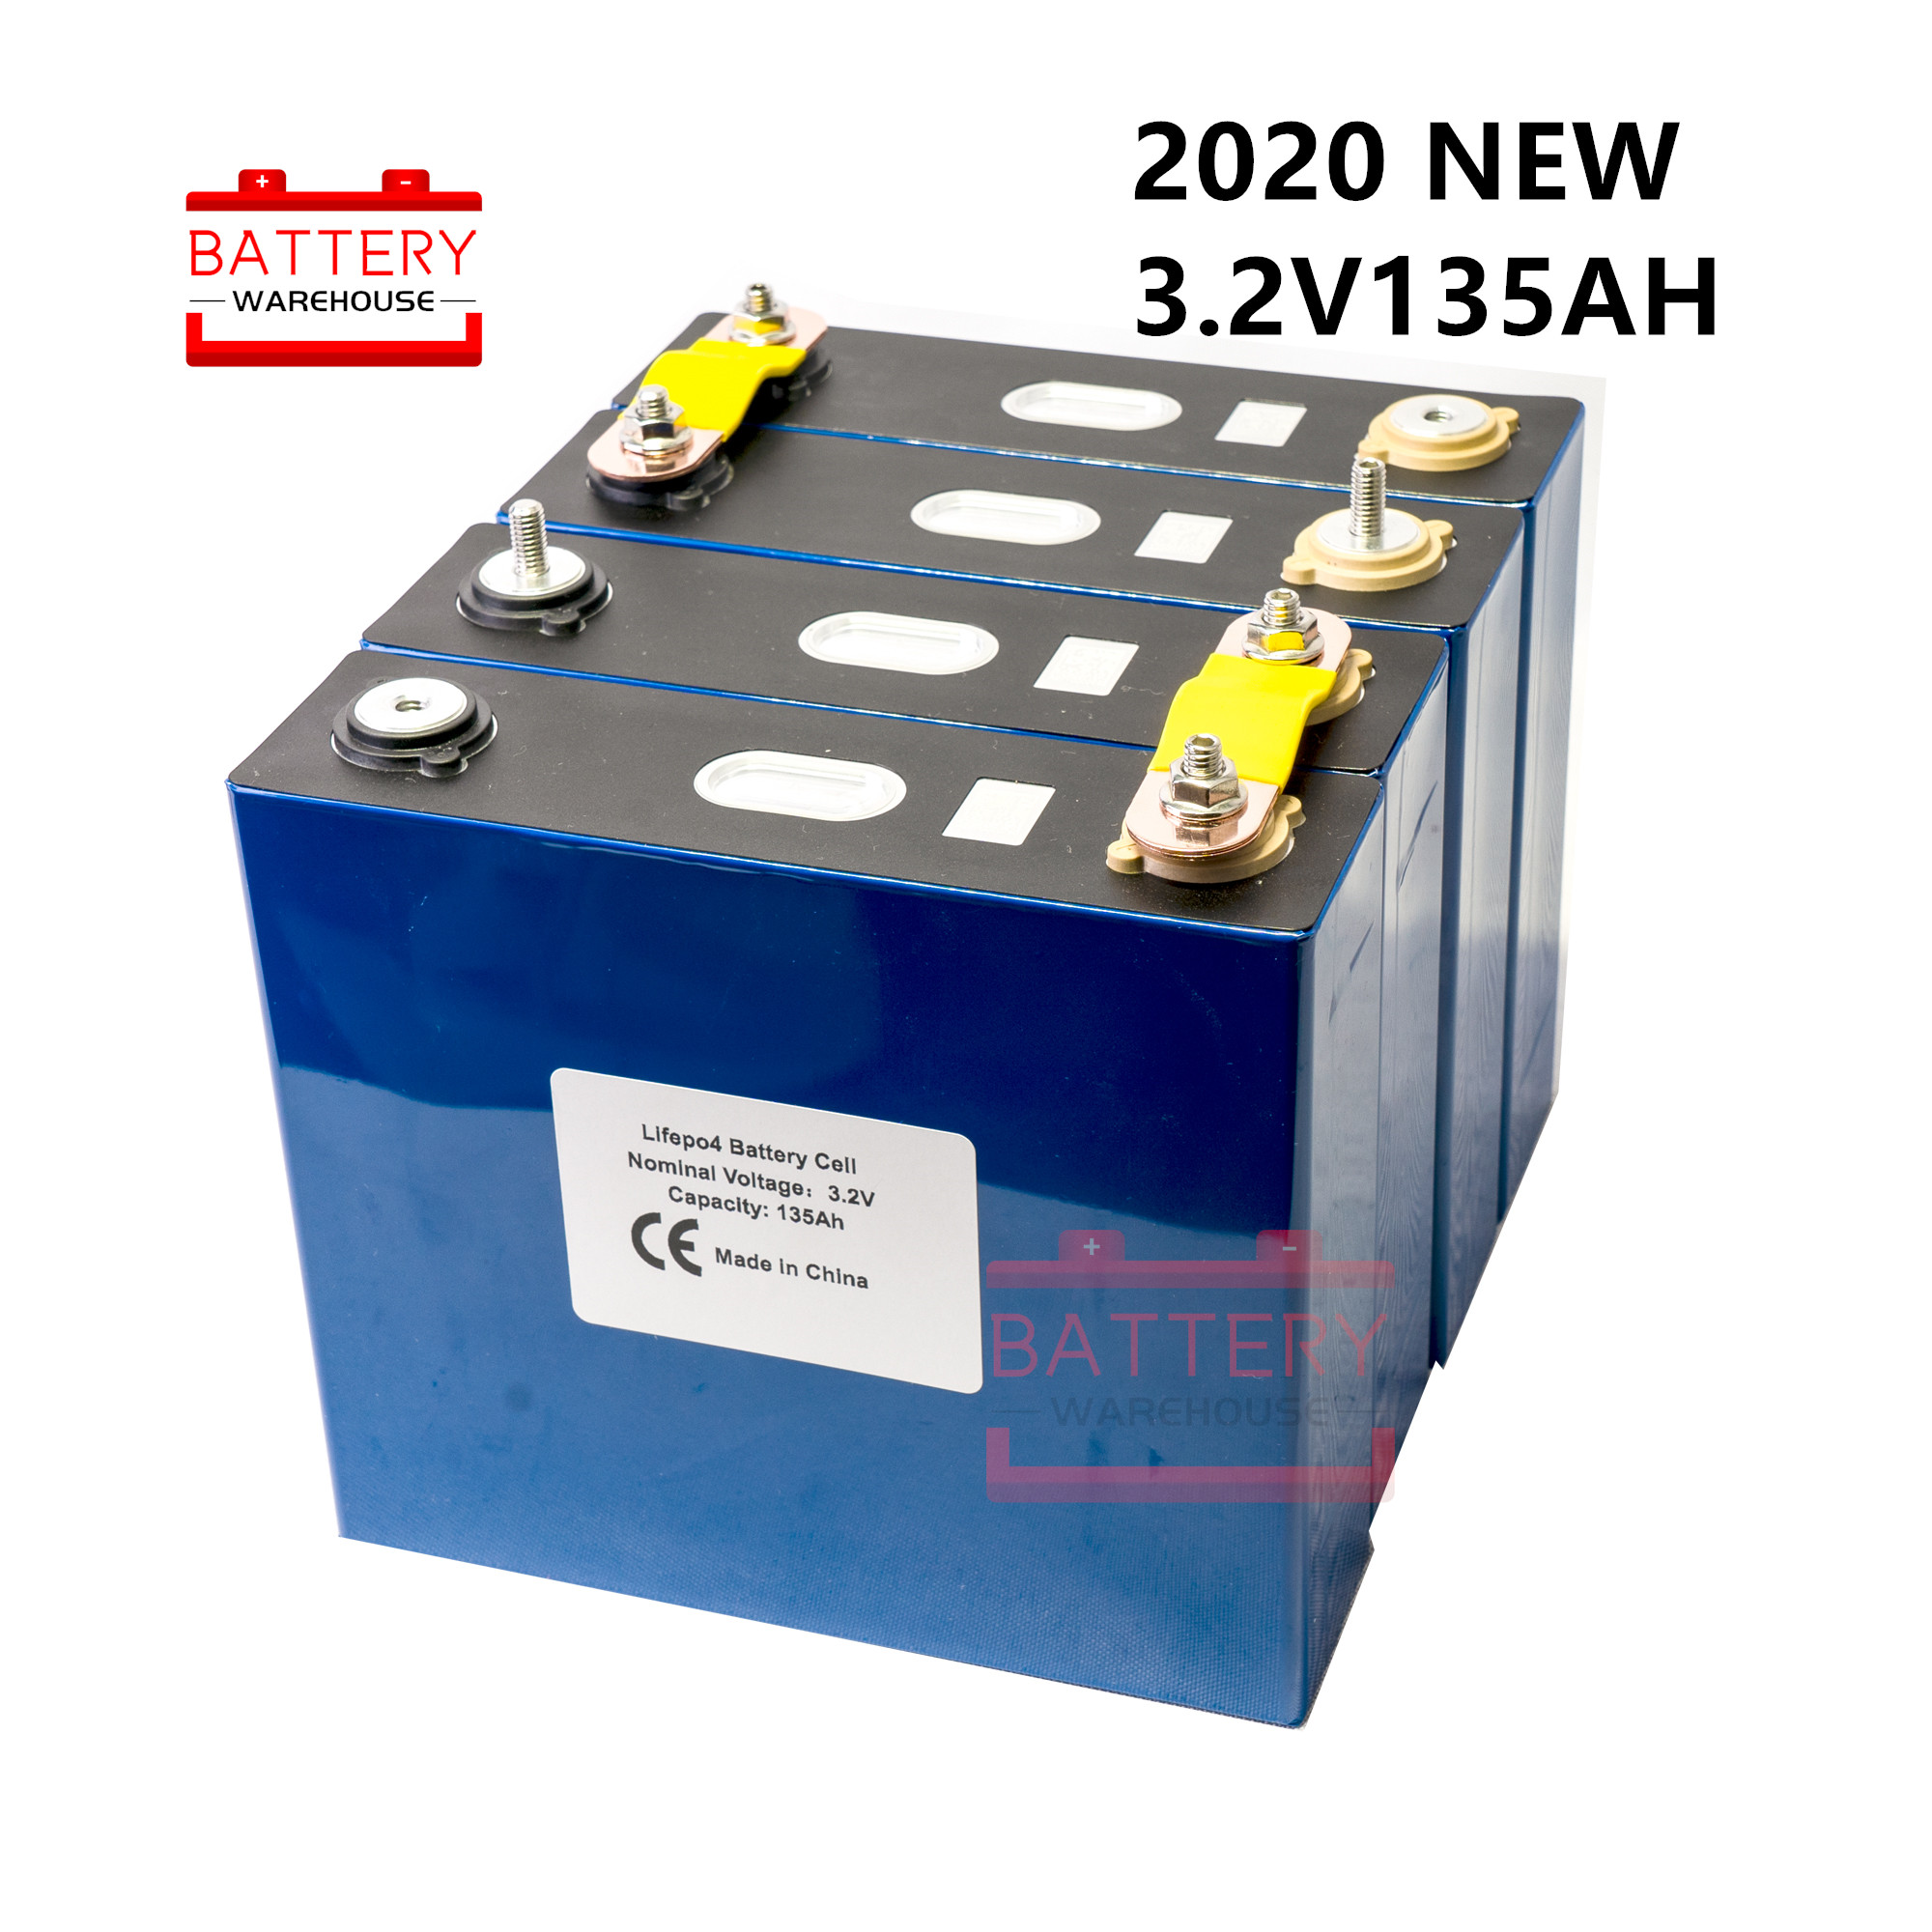 4Pcs NEW 3.2v 120ah 135ah Lifepo4 <font><b>battery</b></font> Lithium iron phosphate cell <font><b>batteries</b></font> <font><b>12v</b></font> 24V150AH for solar RV pack EU US TAX FREE image